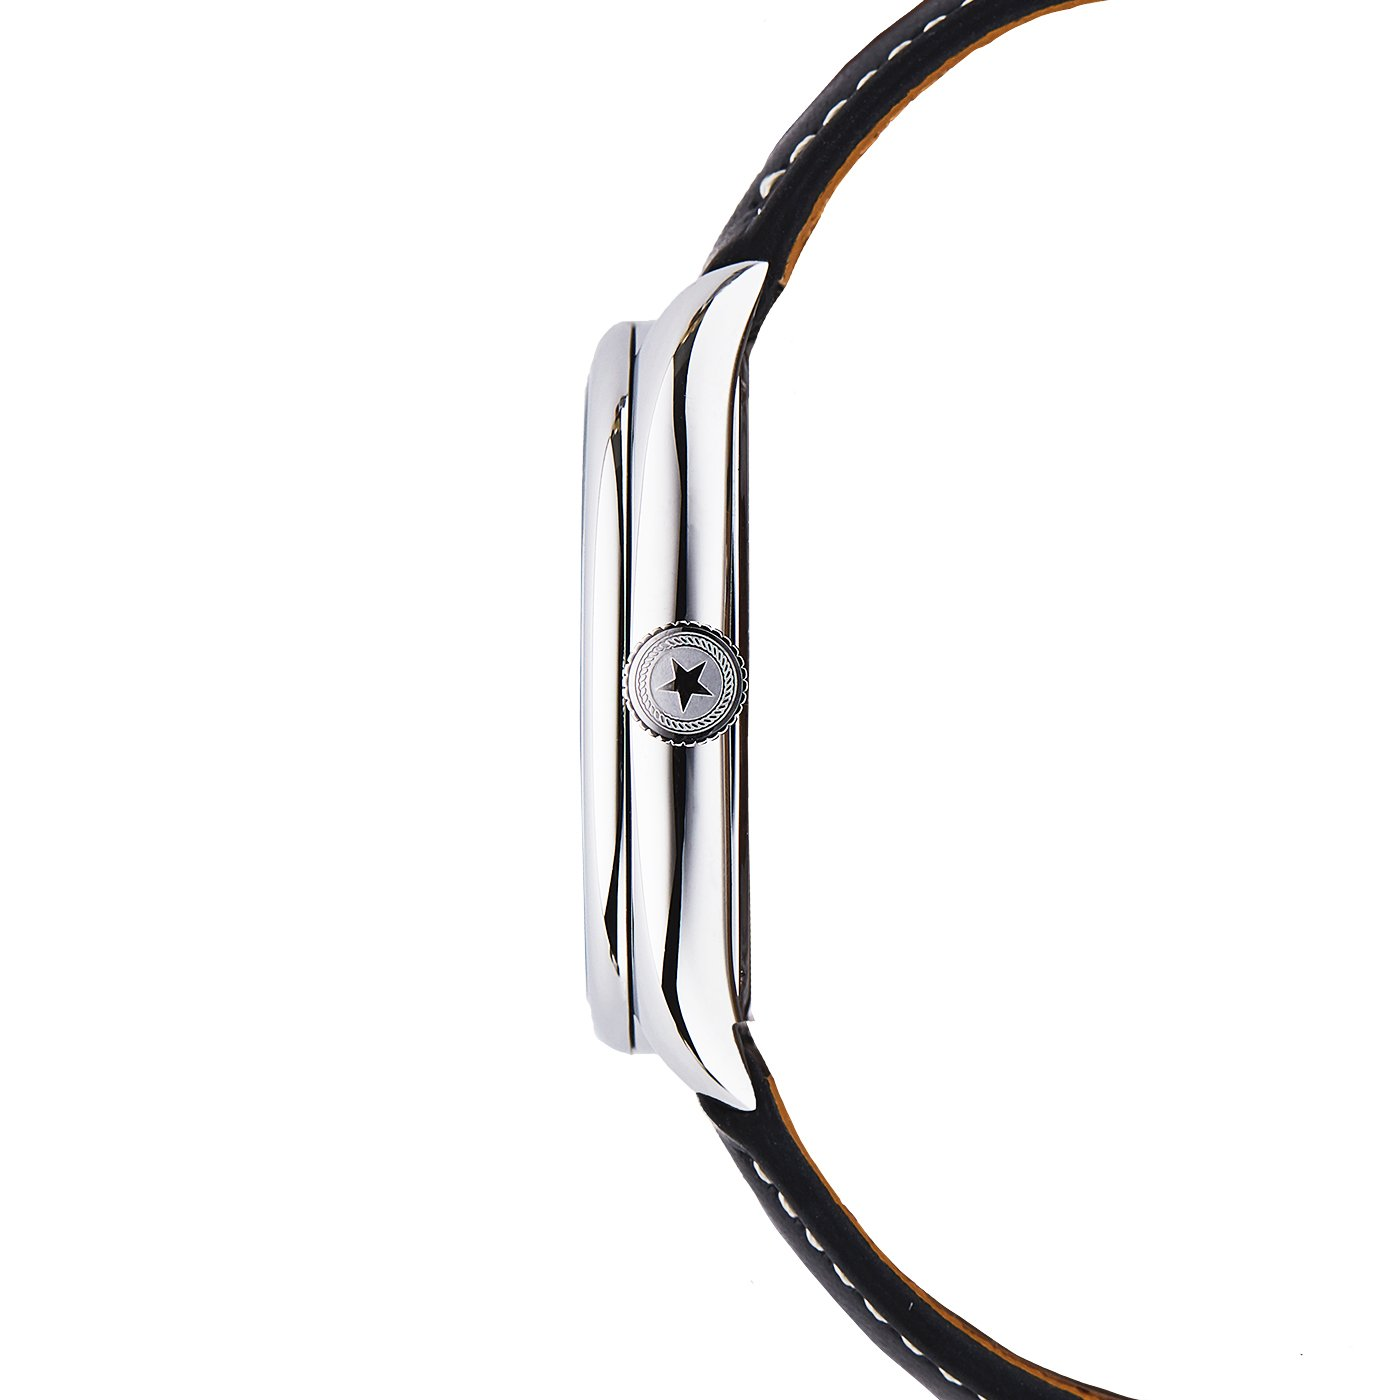 Jack Mason Women's Watch Issue No 1 SS Sub Second MOP Dial Black Leather Strap by Jack Mason (Image #2)